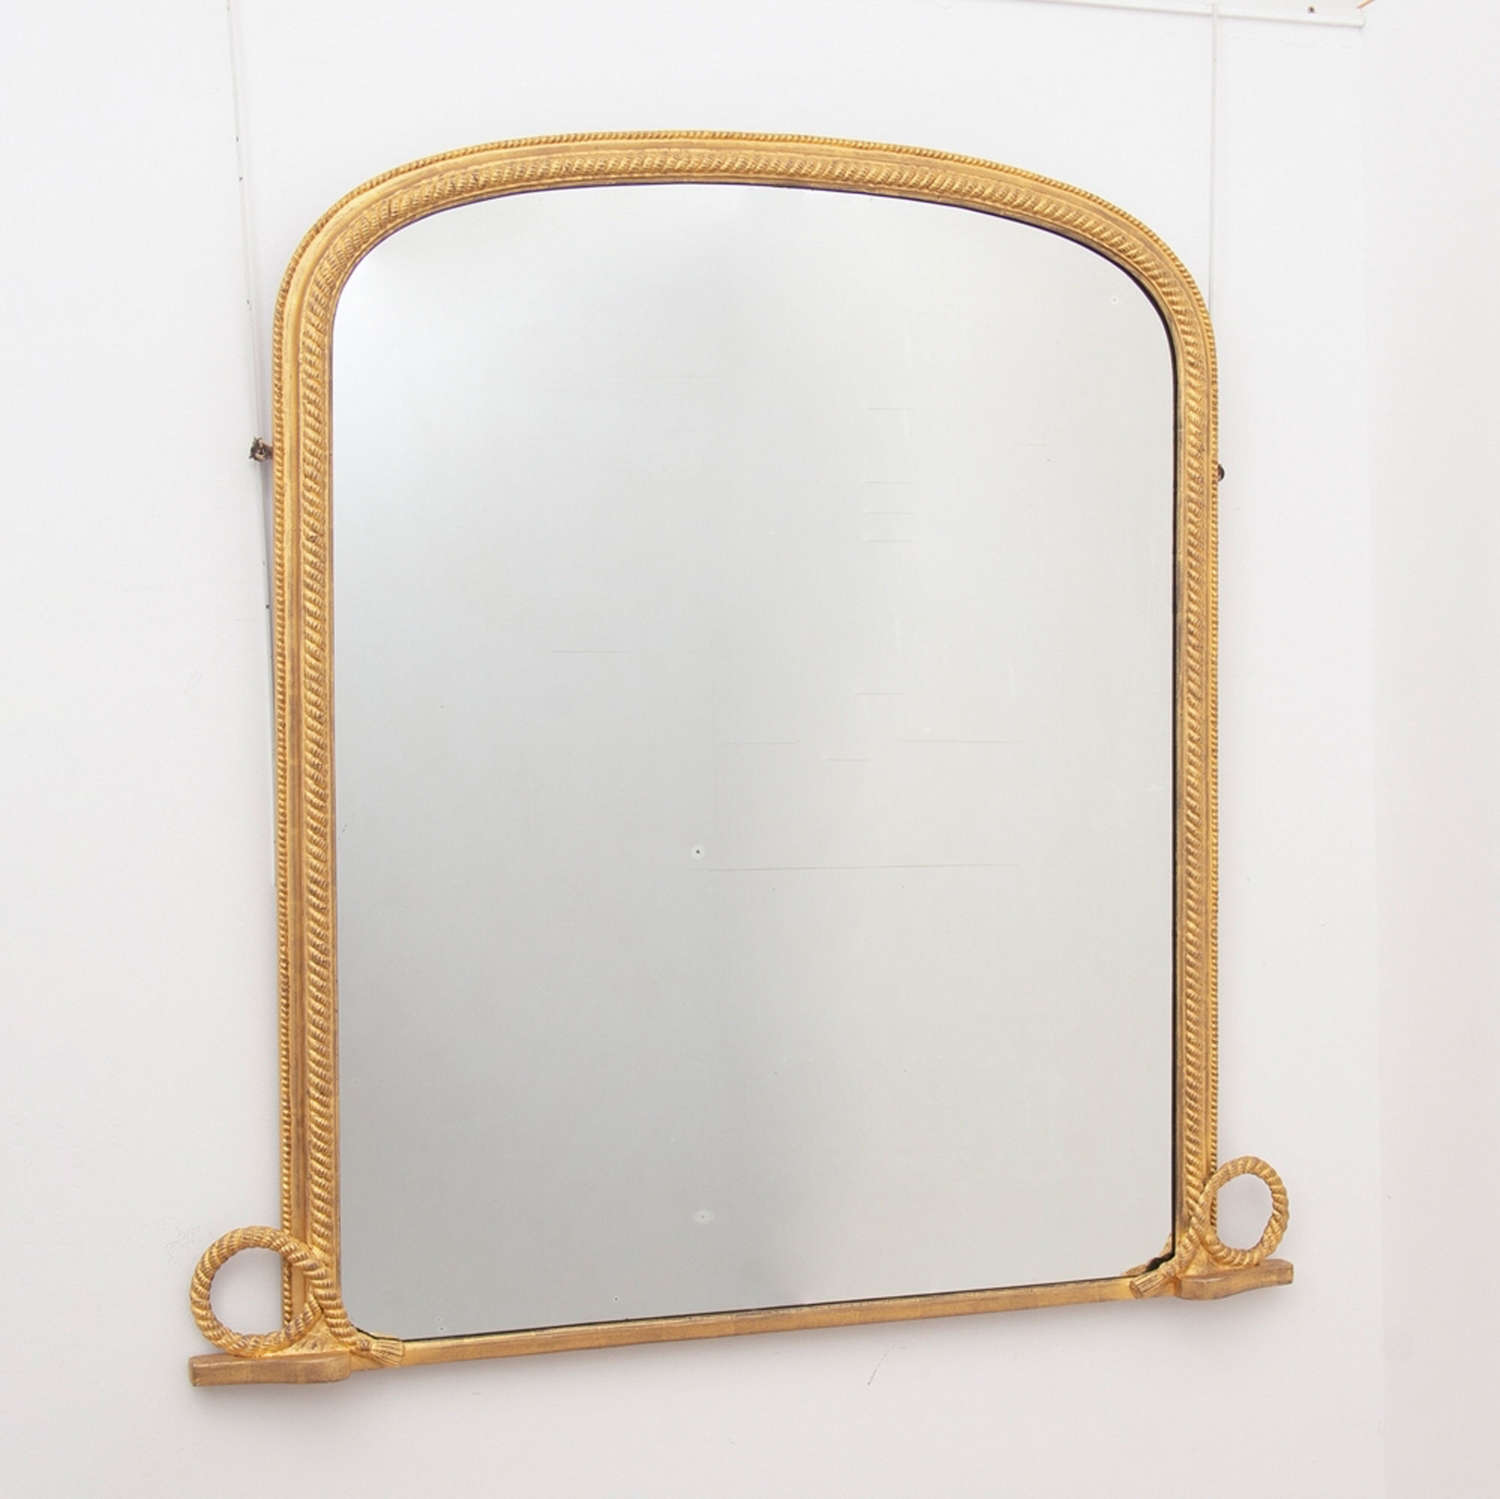 An antique English water gilded mirror with original plate marine rope